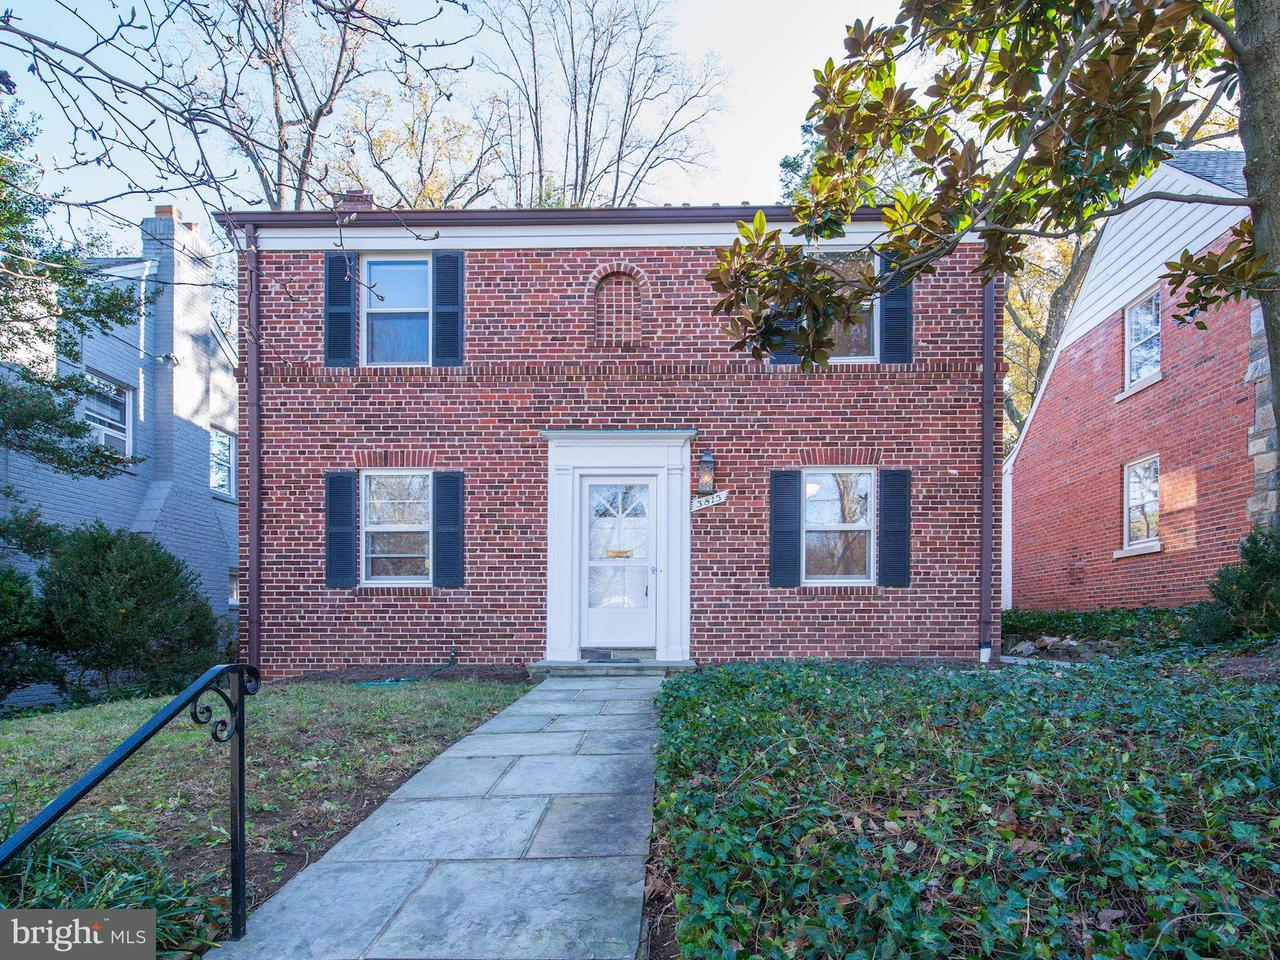 Single Family Home for Sale at 3813 47TH ST NW 3813 47TH ST NW Washington, District Of Columbia 20016 United States